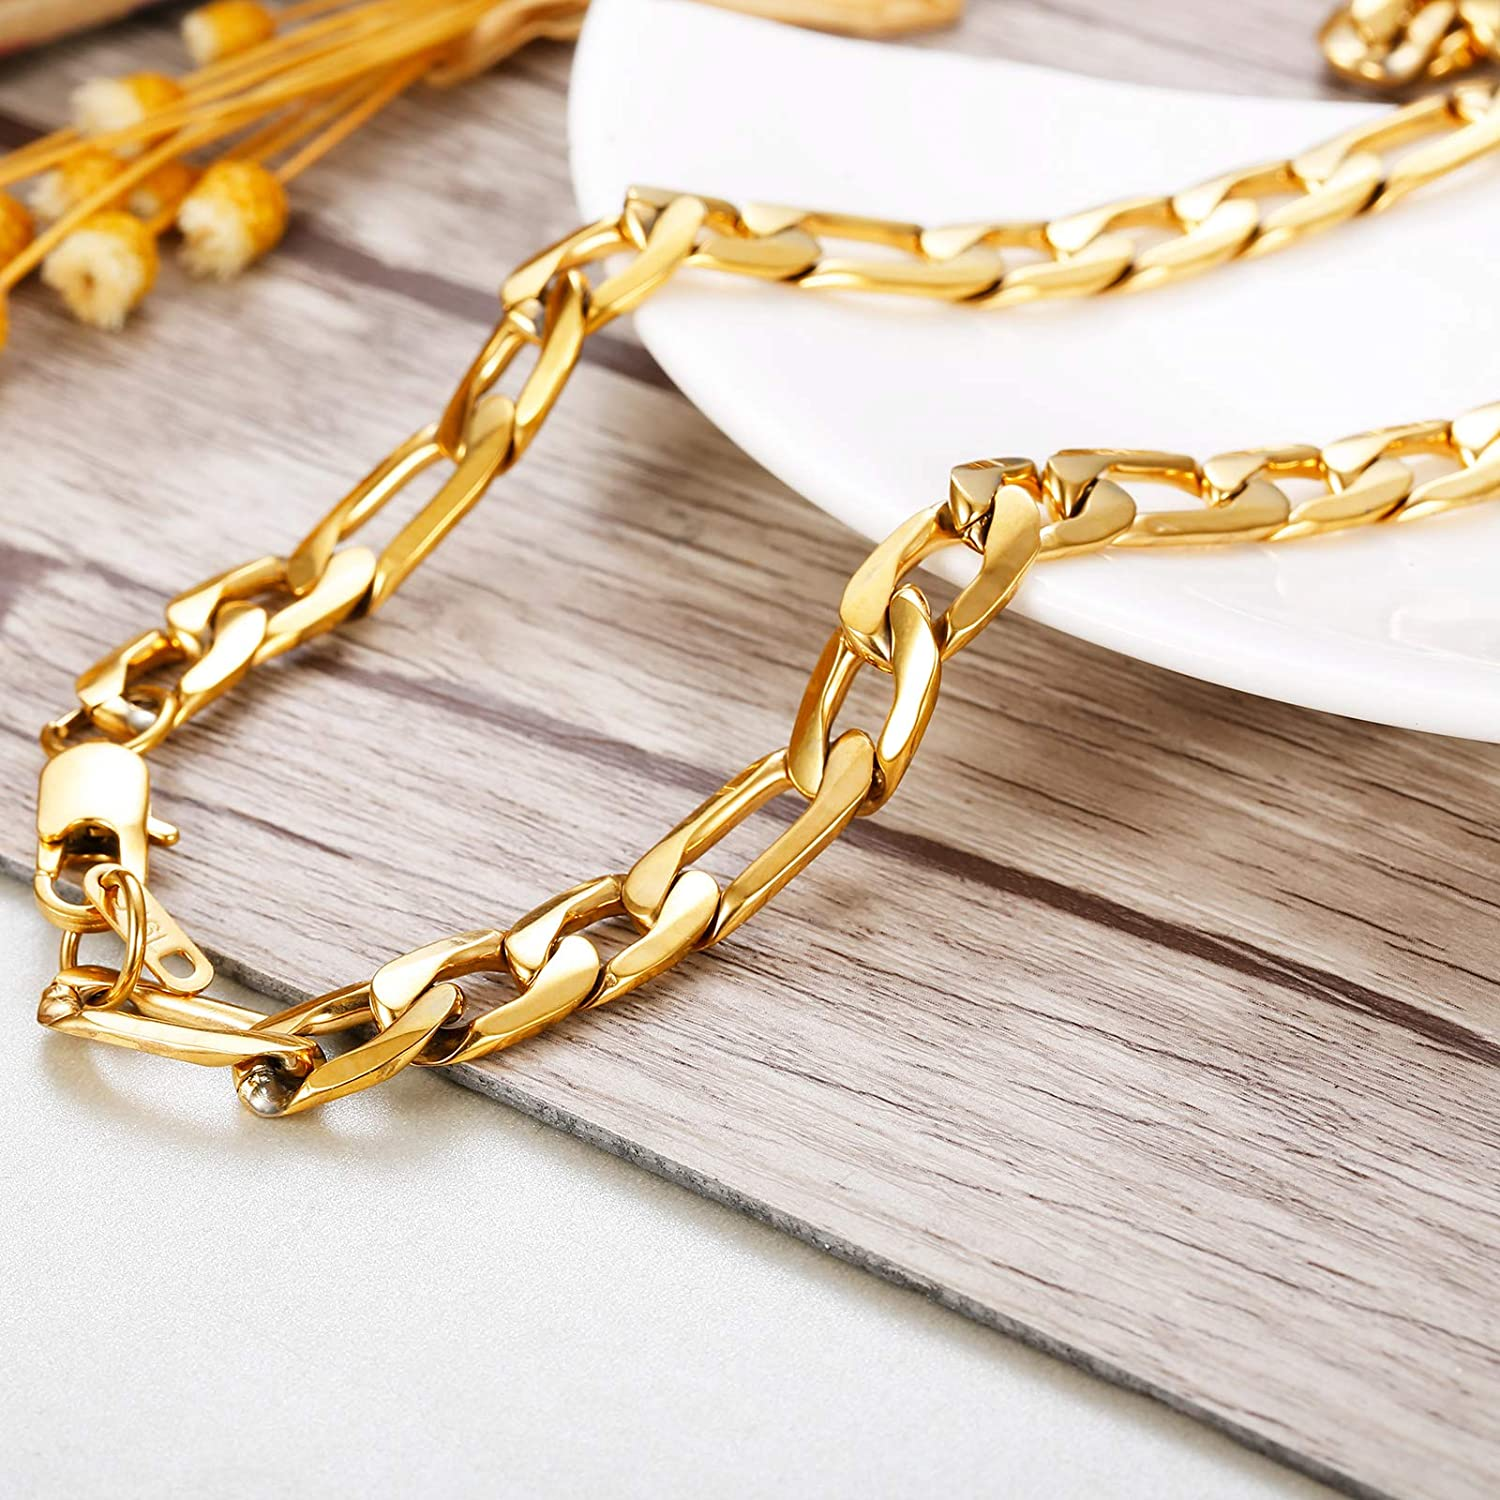 sailimue Figaro Chain Stainless Steel Link Necklace for Men Women 4-13mm Wide Necklace Length 18//20//22//24//26//28//30 inches Black//Gold//Silver Tone Jewelry Gift /…